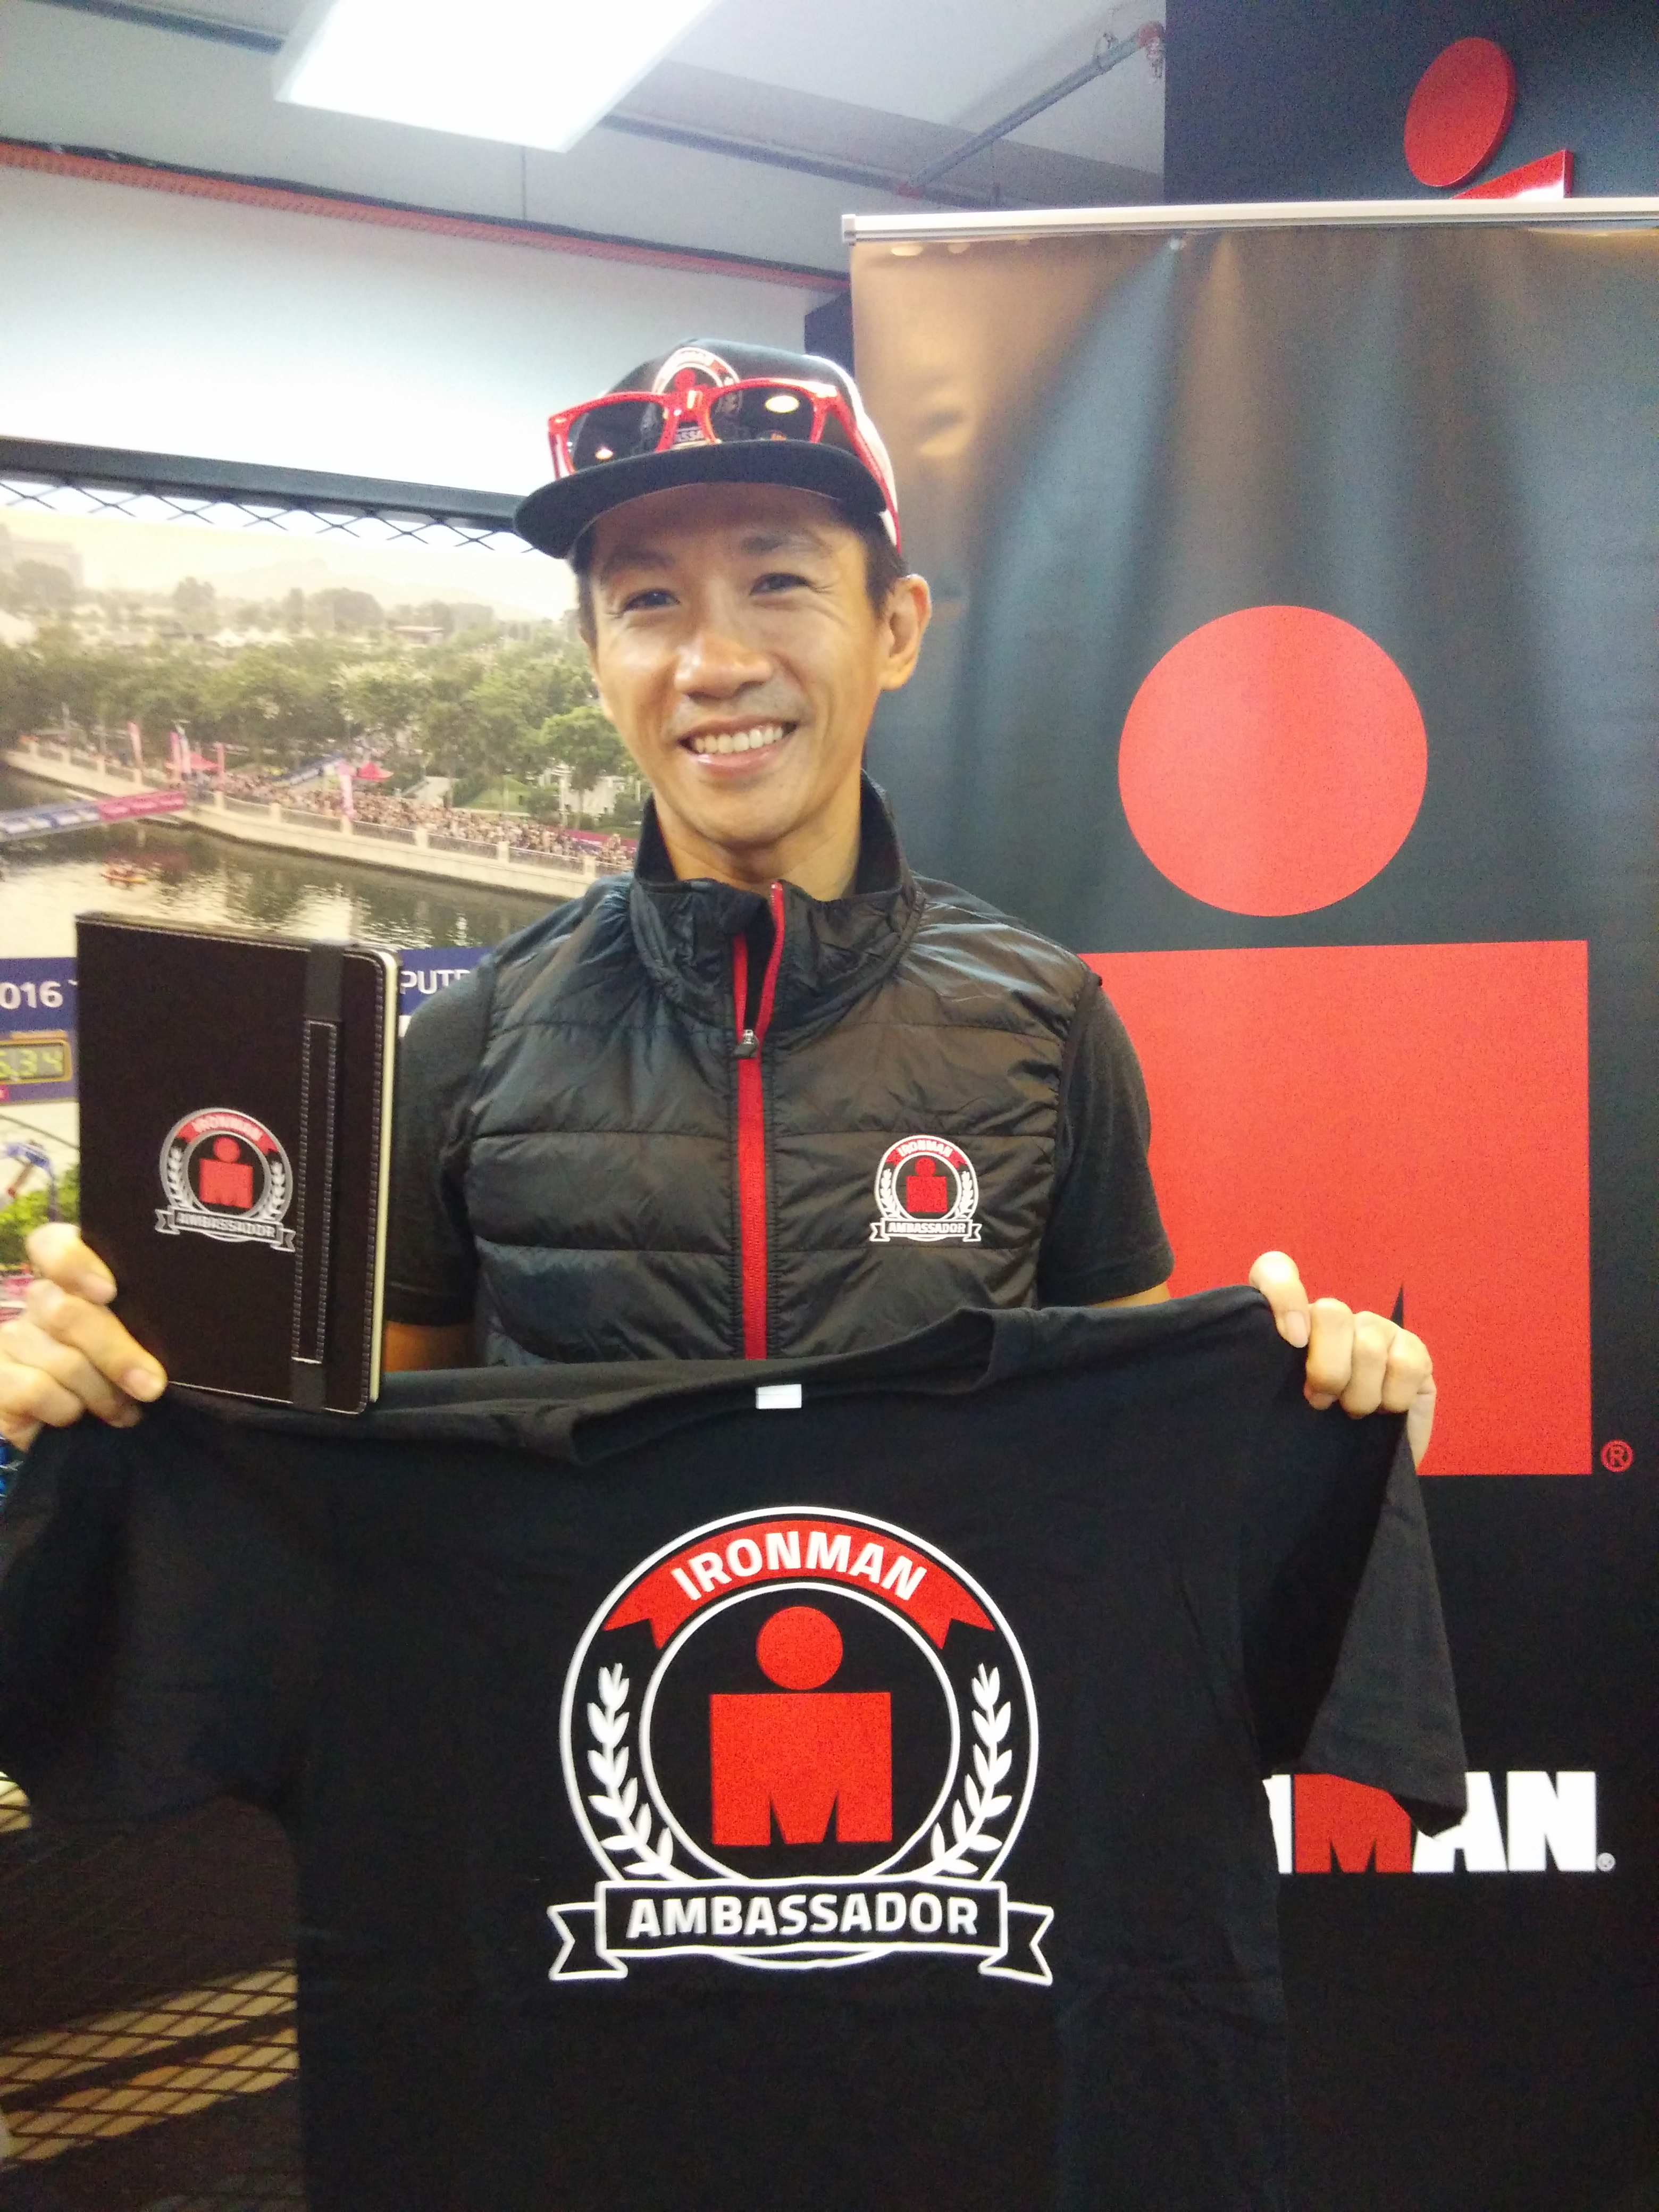 Rupert Chen has been appointed as the Ironman Asia Ambassador representing Malaysia.